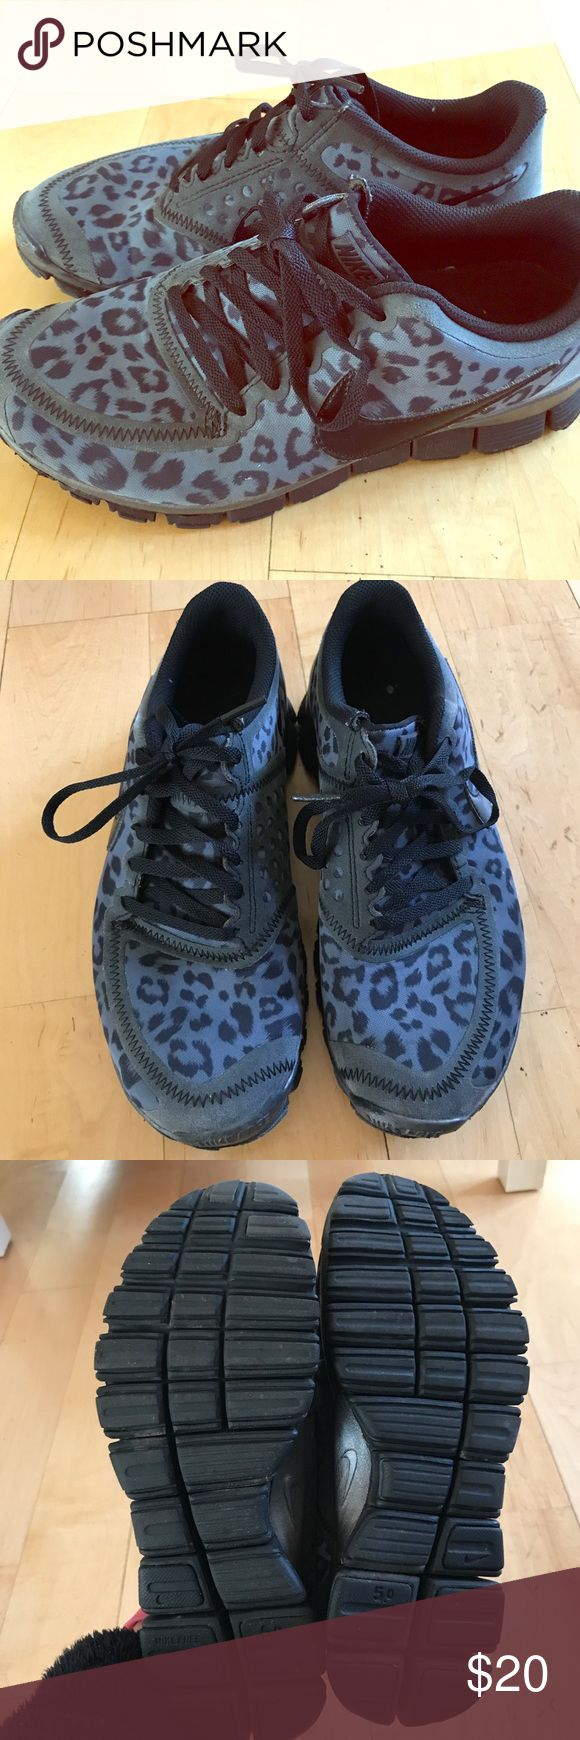 Leopard pink Nike shoes. Size 7.5 Leopard print Nike shoes. Size 7.5. Gently worn - still in good condition! Nike Shoes Athletic Shoes